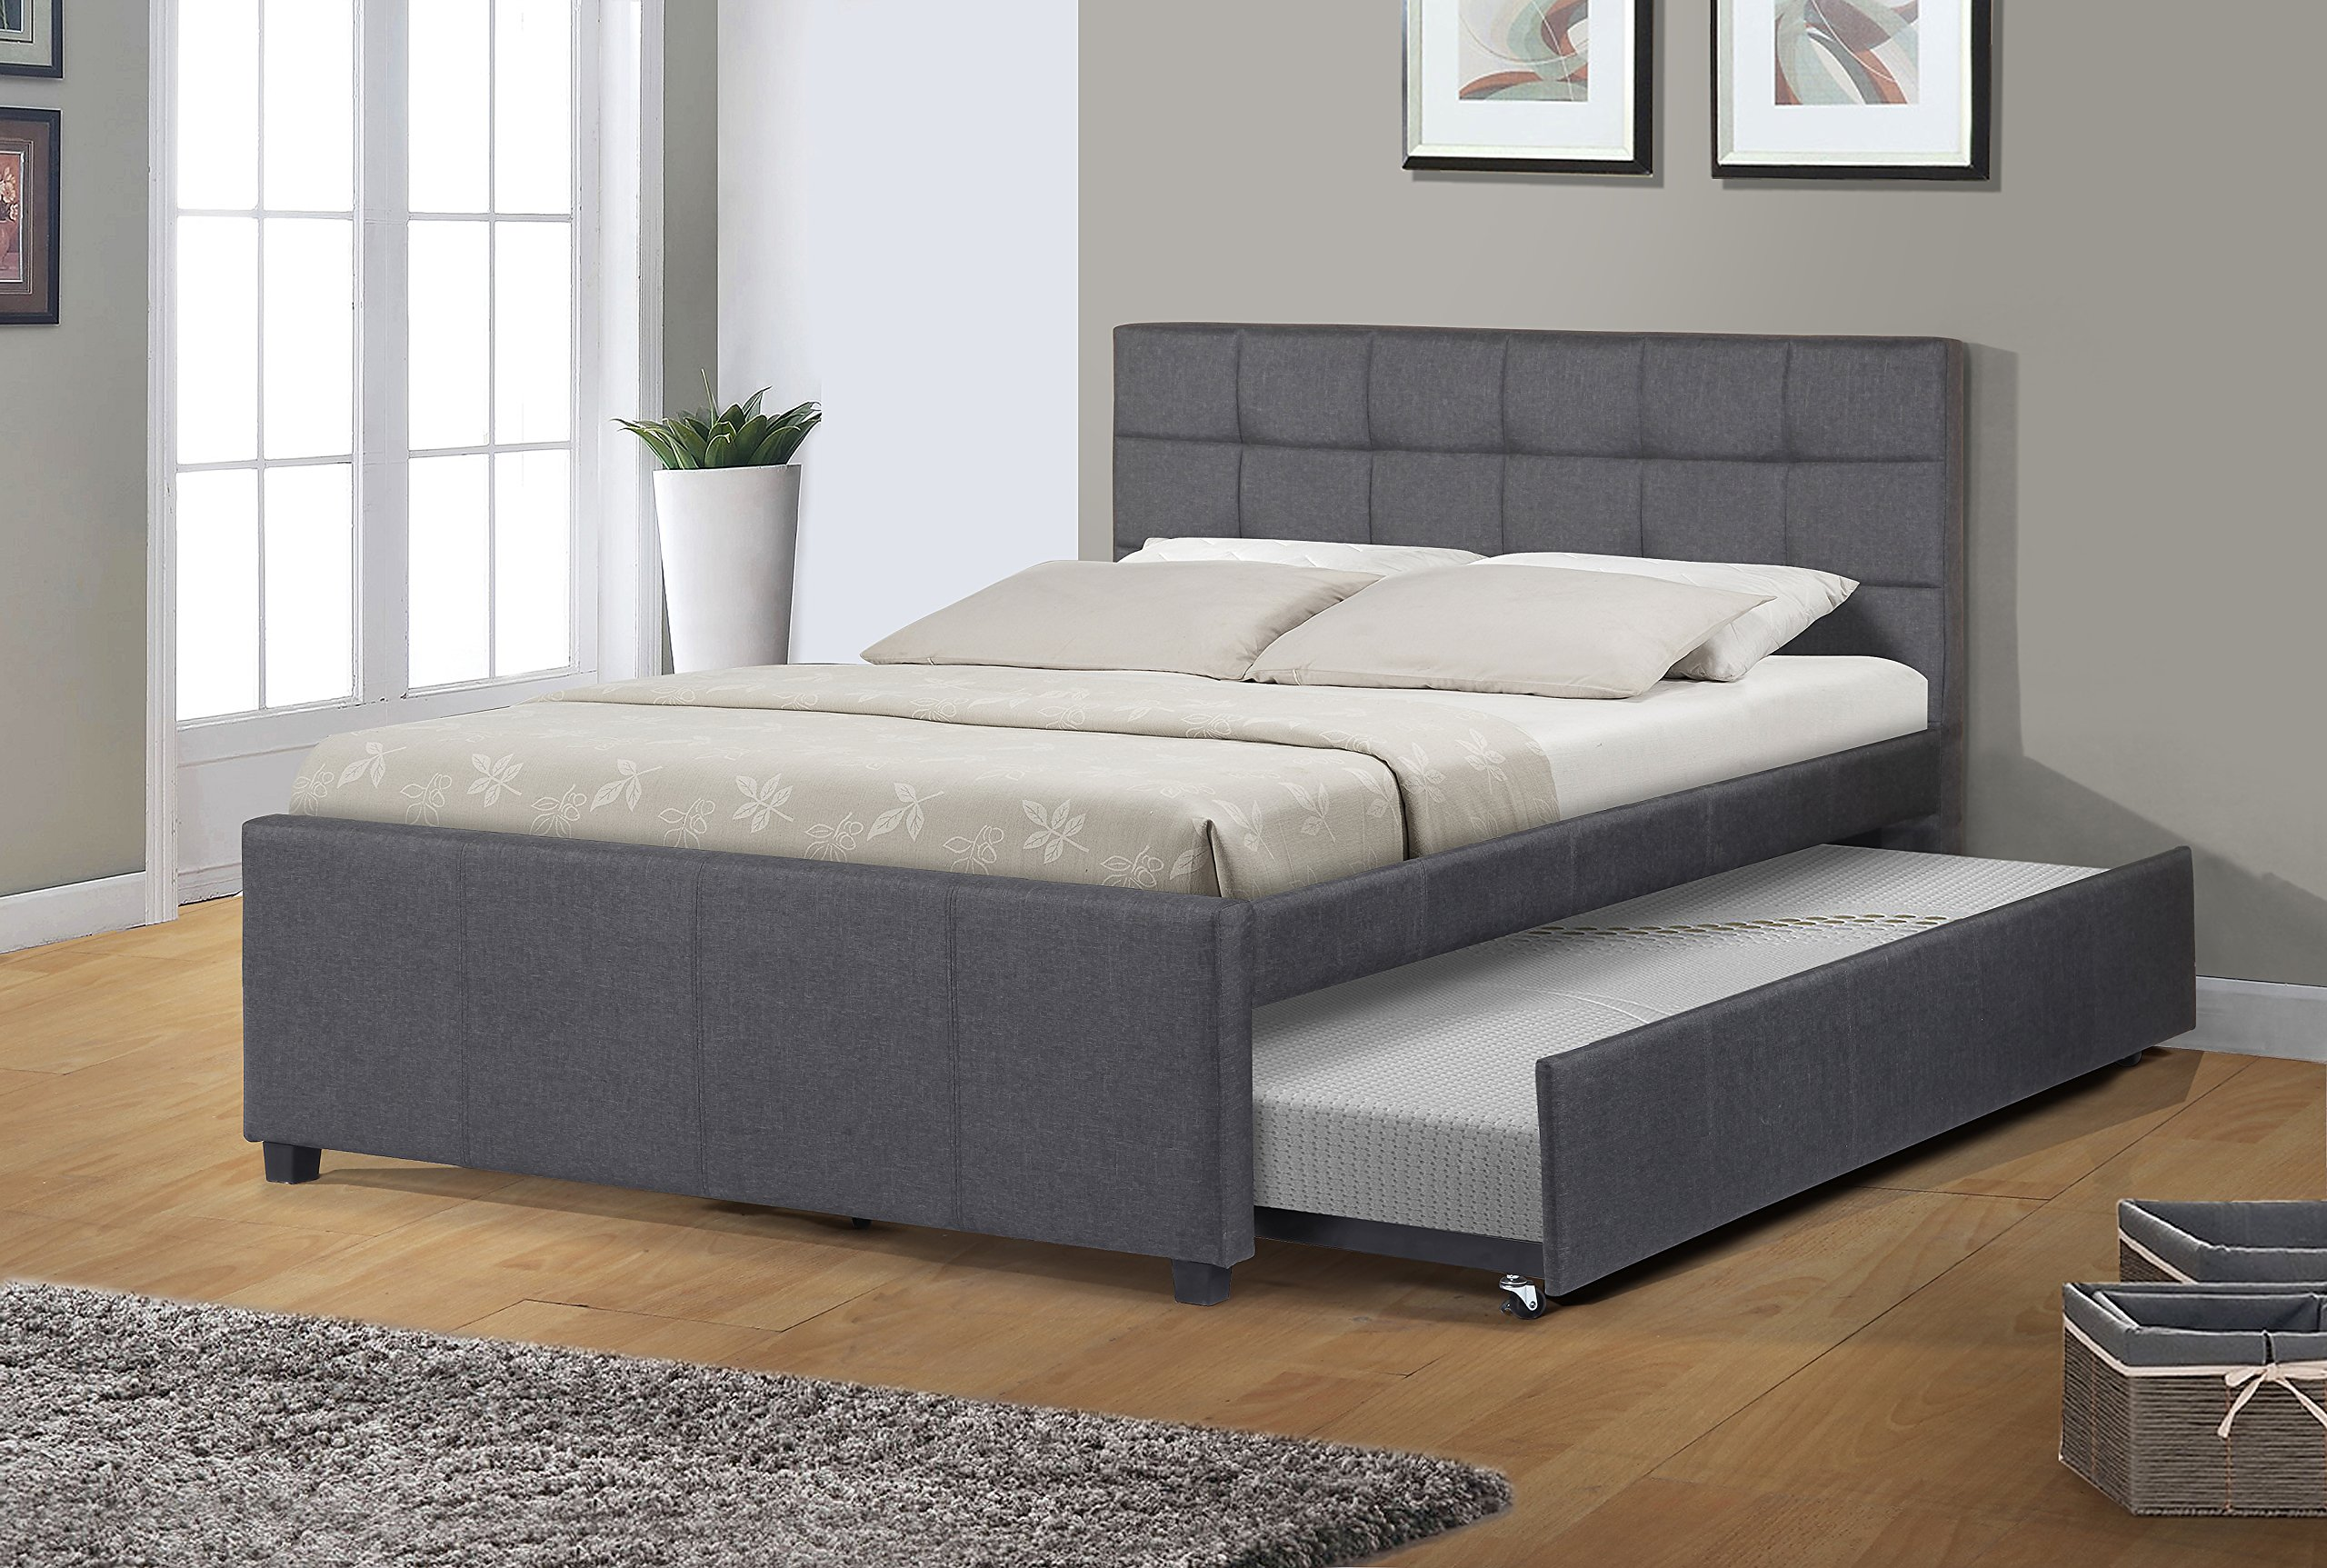 Best Quality Furniture K27 Full Bed W/Trundle, Dark Gray by Best Quality